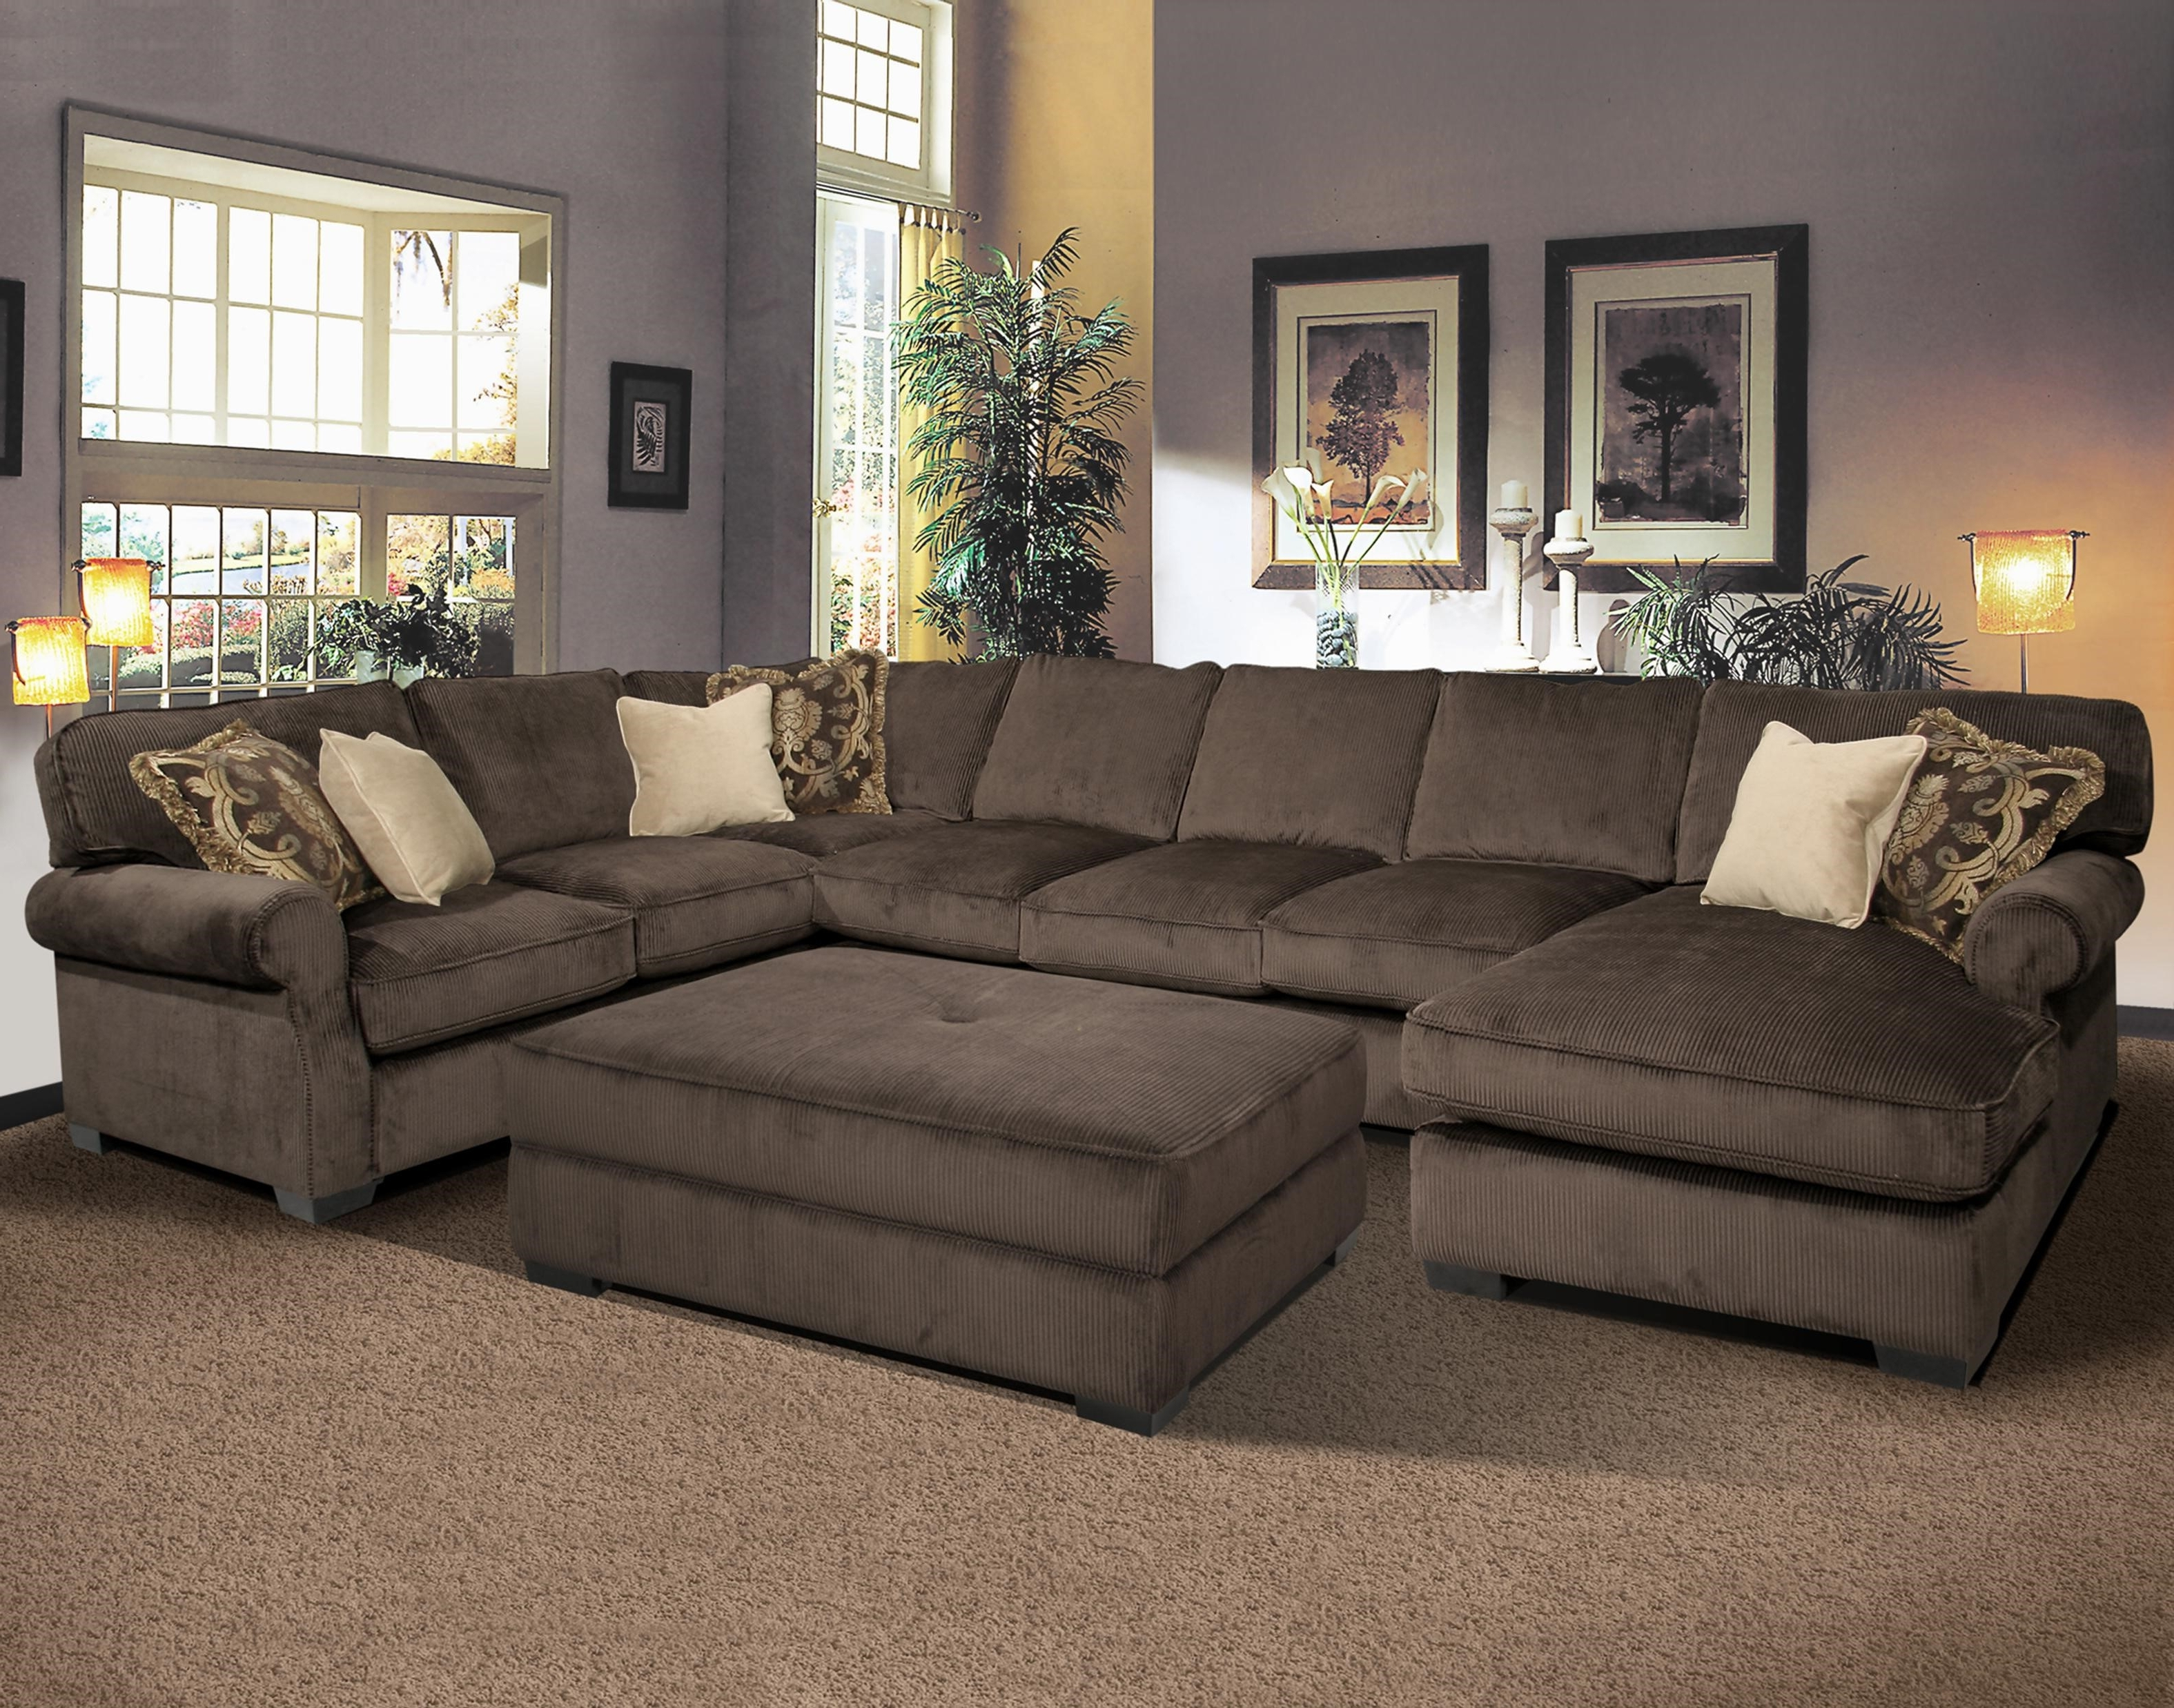 Widely Used Jcpenney Sectional Sofas Intended For 73 Wonderful Jcpenney Sectional Sofa Home Design (View 20 of 20)